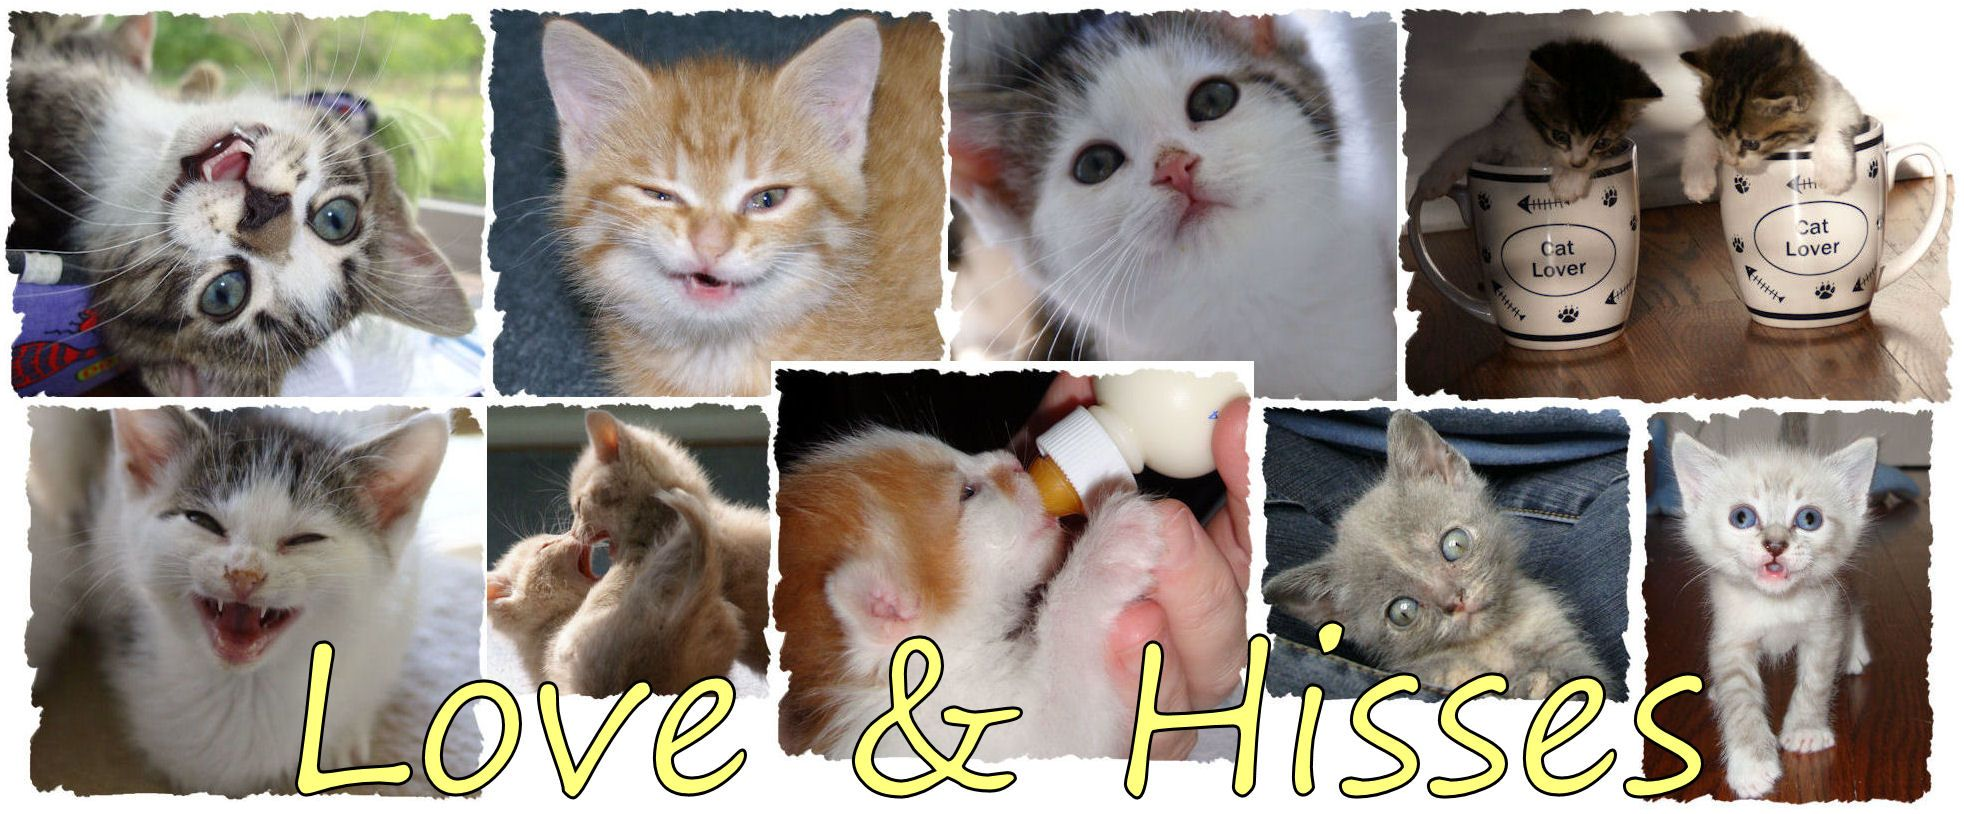 Awesome website w foster kitties; and lovely photos of